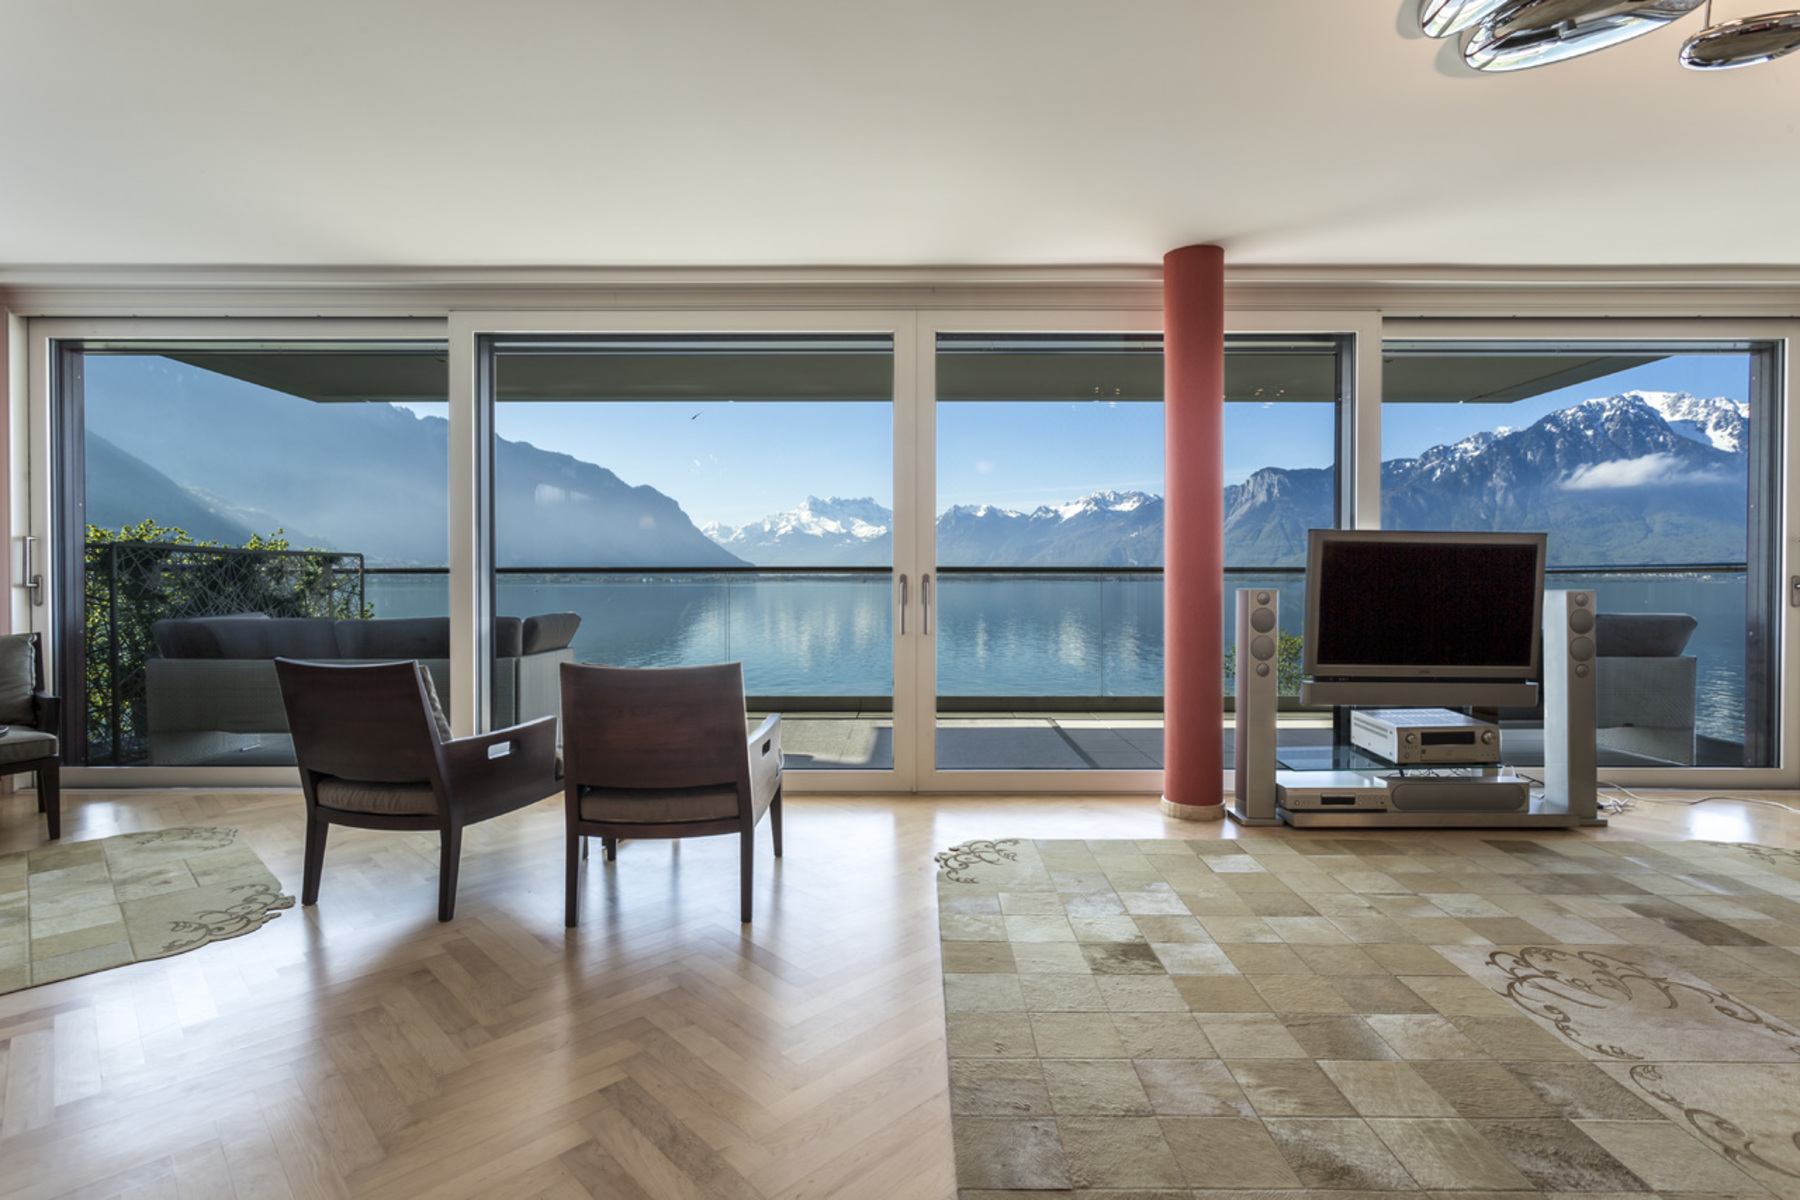 共管式独立产权公寓 为 销售 在 Résidence Villa les Bains 4.5 room furnished penthouse On the lakeshor Montreux 蒙特勒, 1820 瑞士